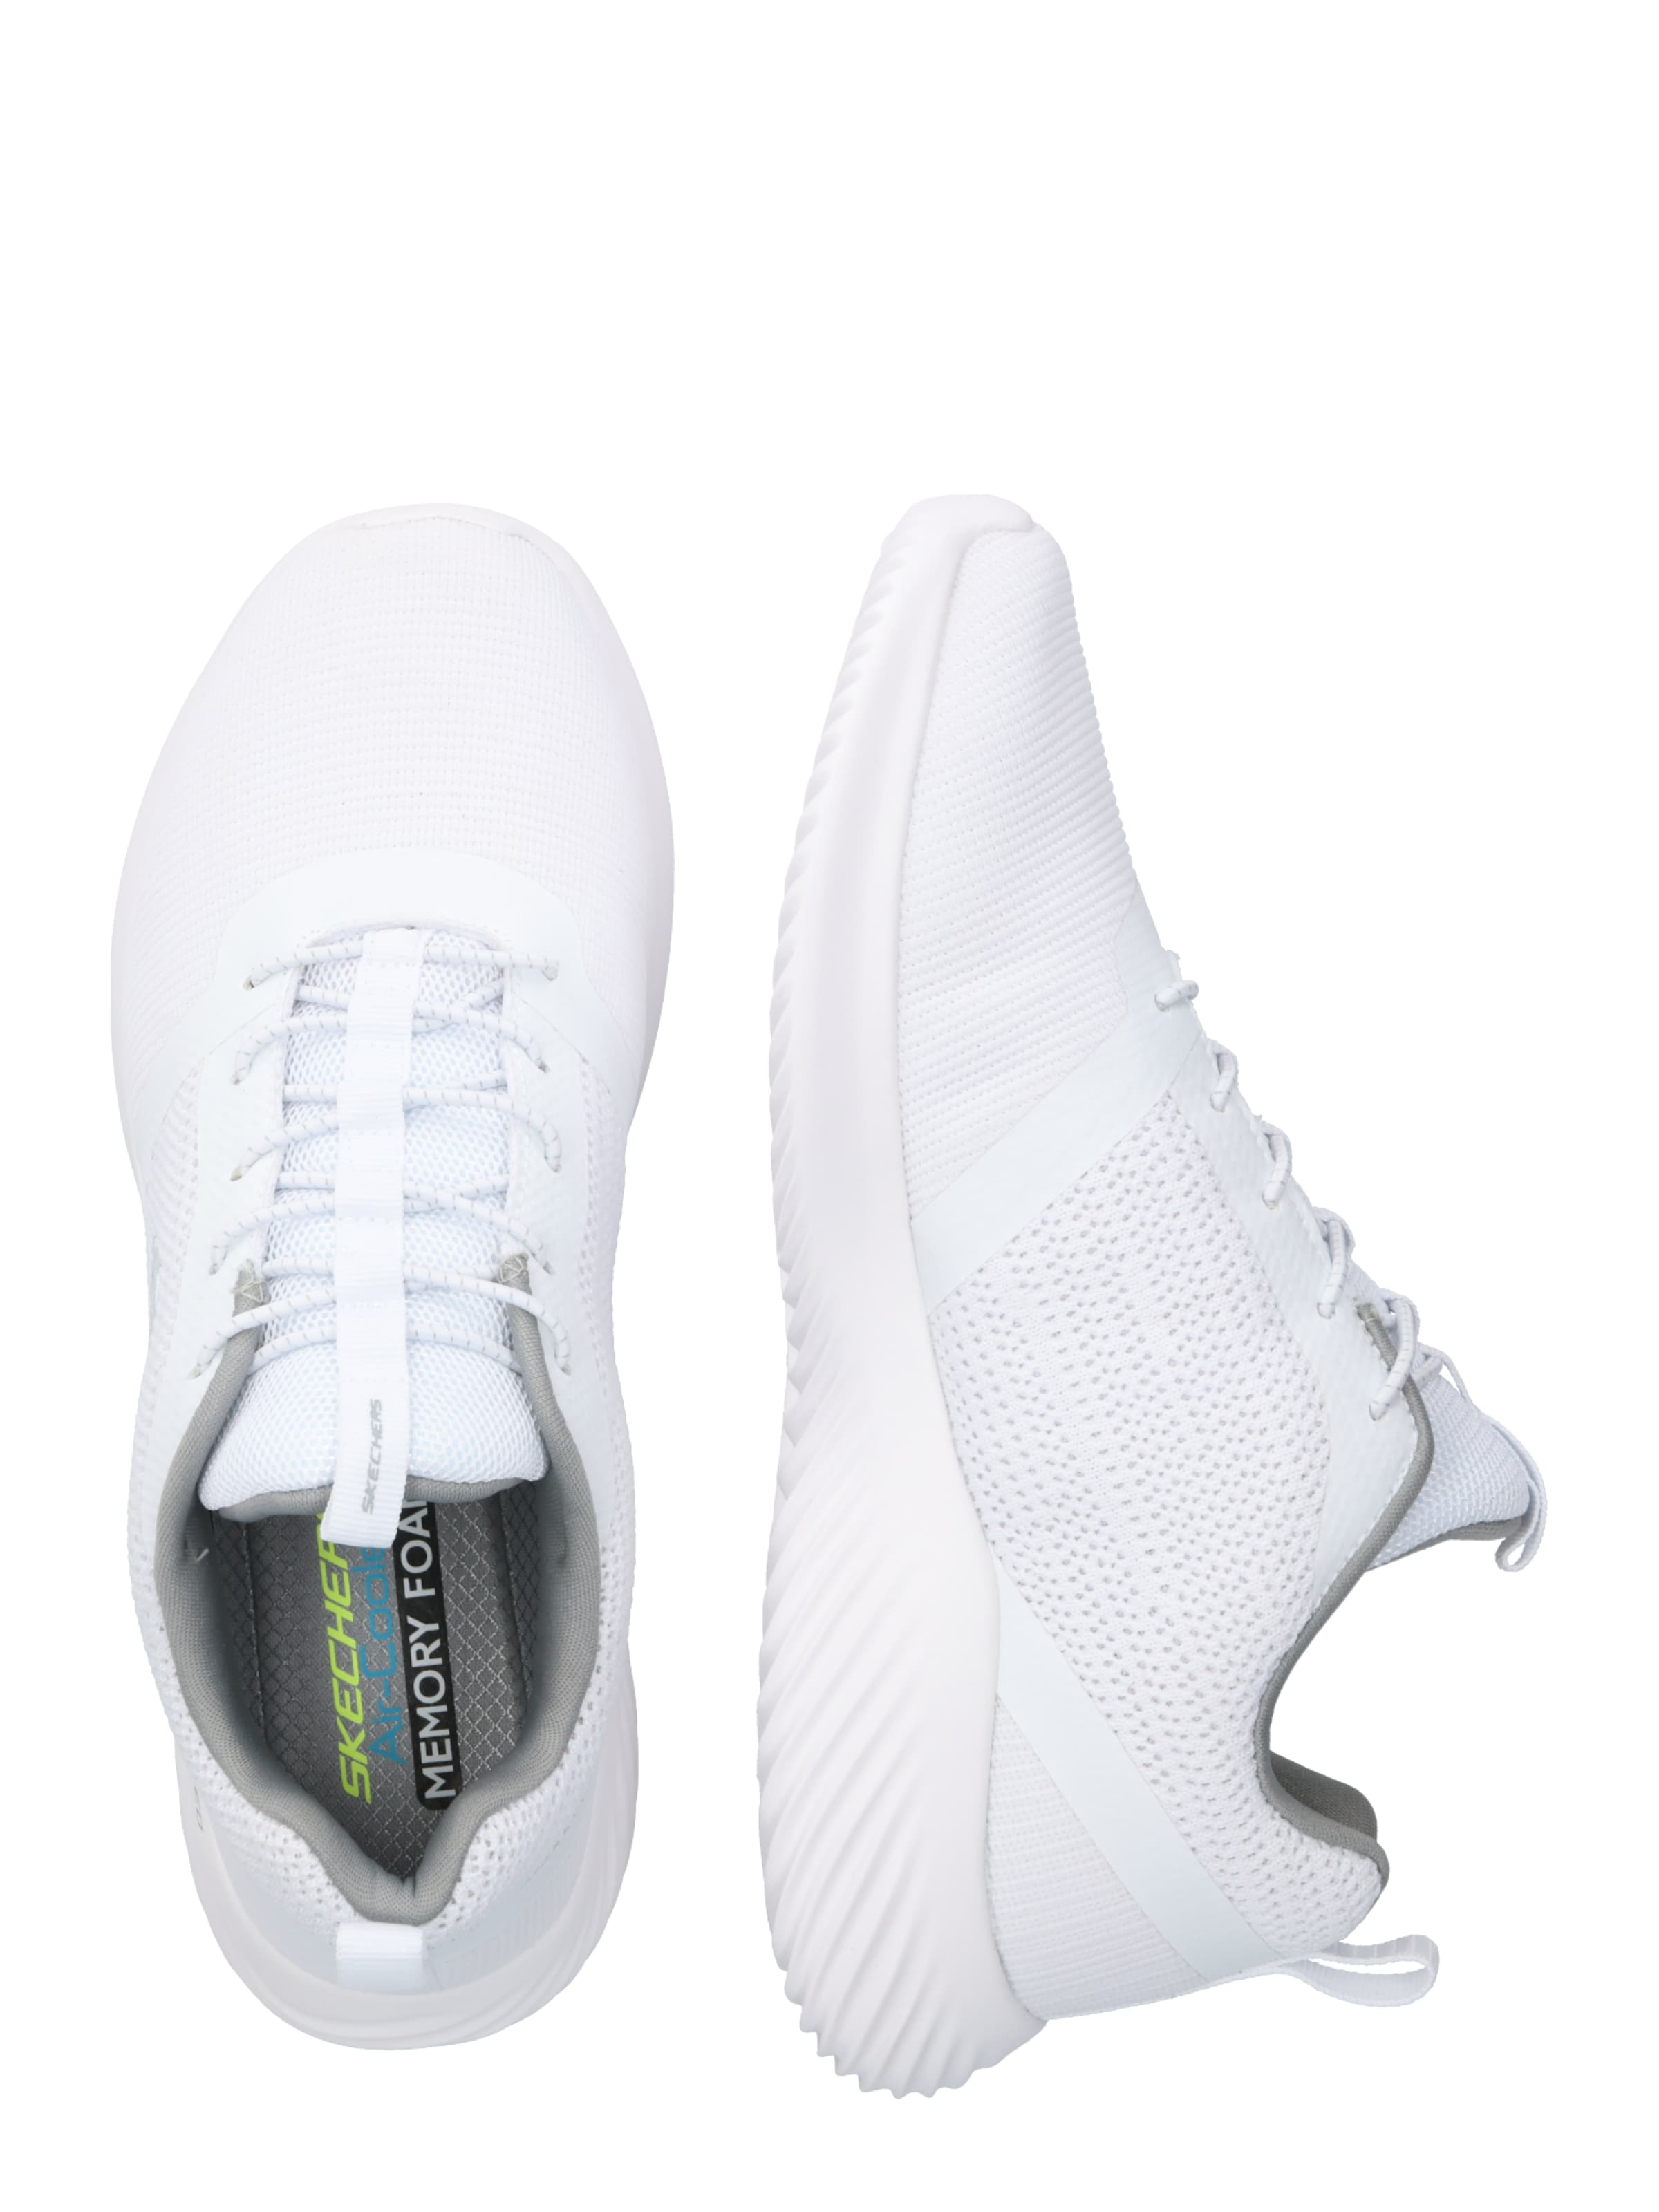 En Blanc Baskets Basses Skechers Skechers lFTcJ3uK1